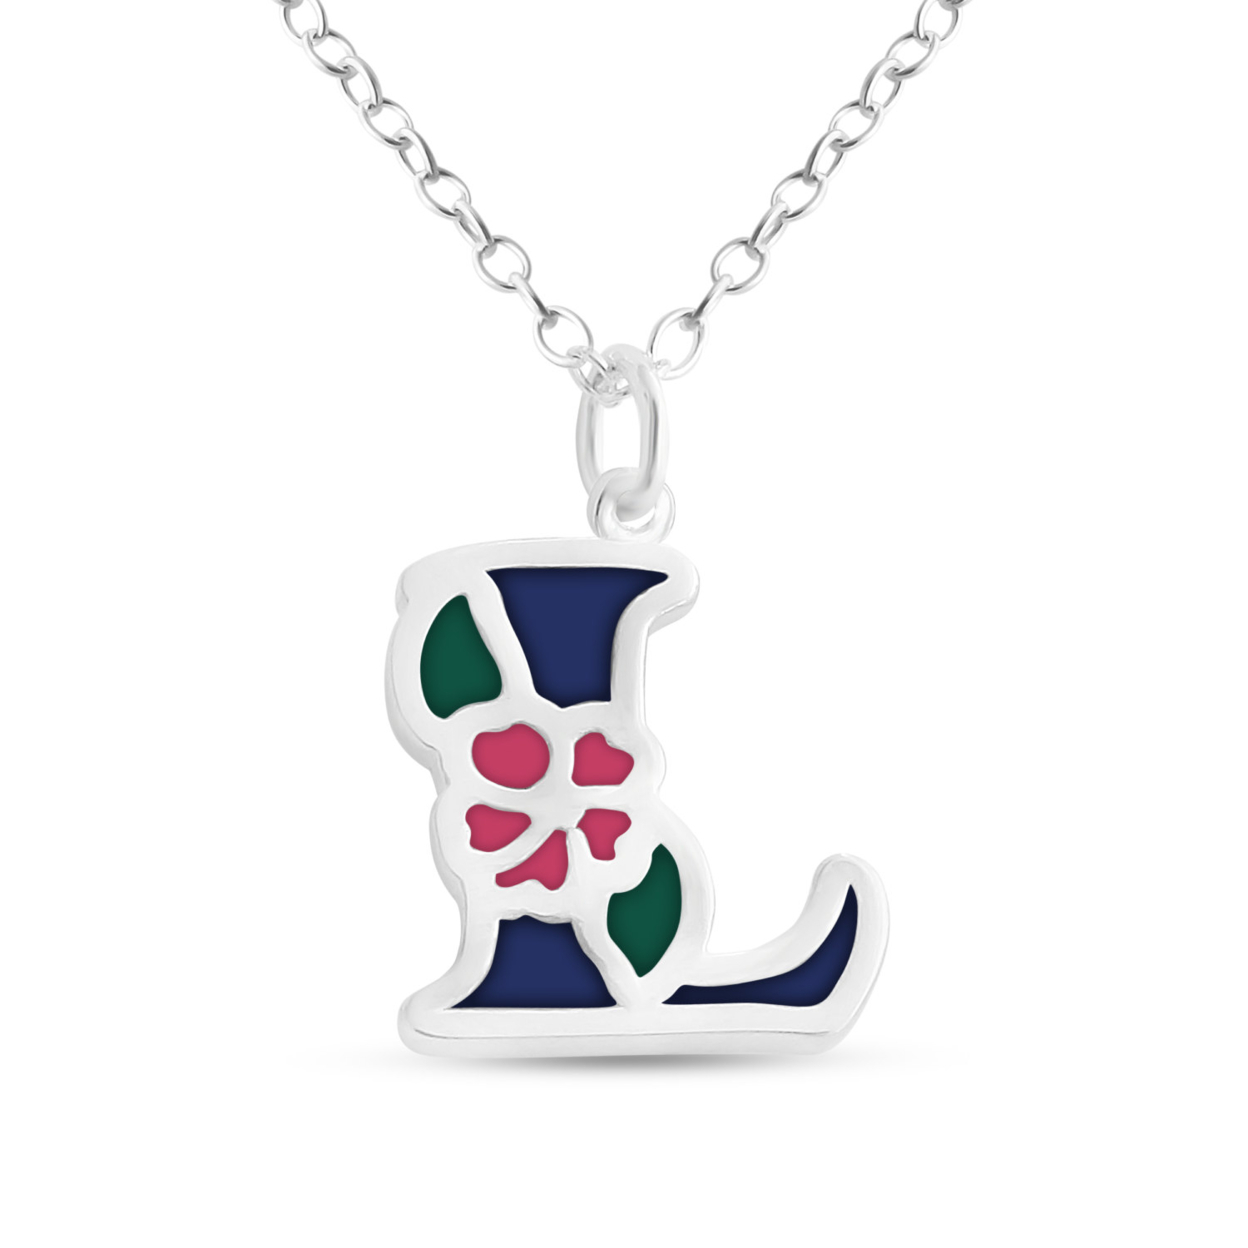 Blue Enameled Initial Letter L With Flower Multi Colors Charm Pendant Necklace #925 Sterling Silver #azaggi N0854s_l_v1 12 Child